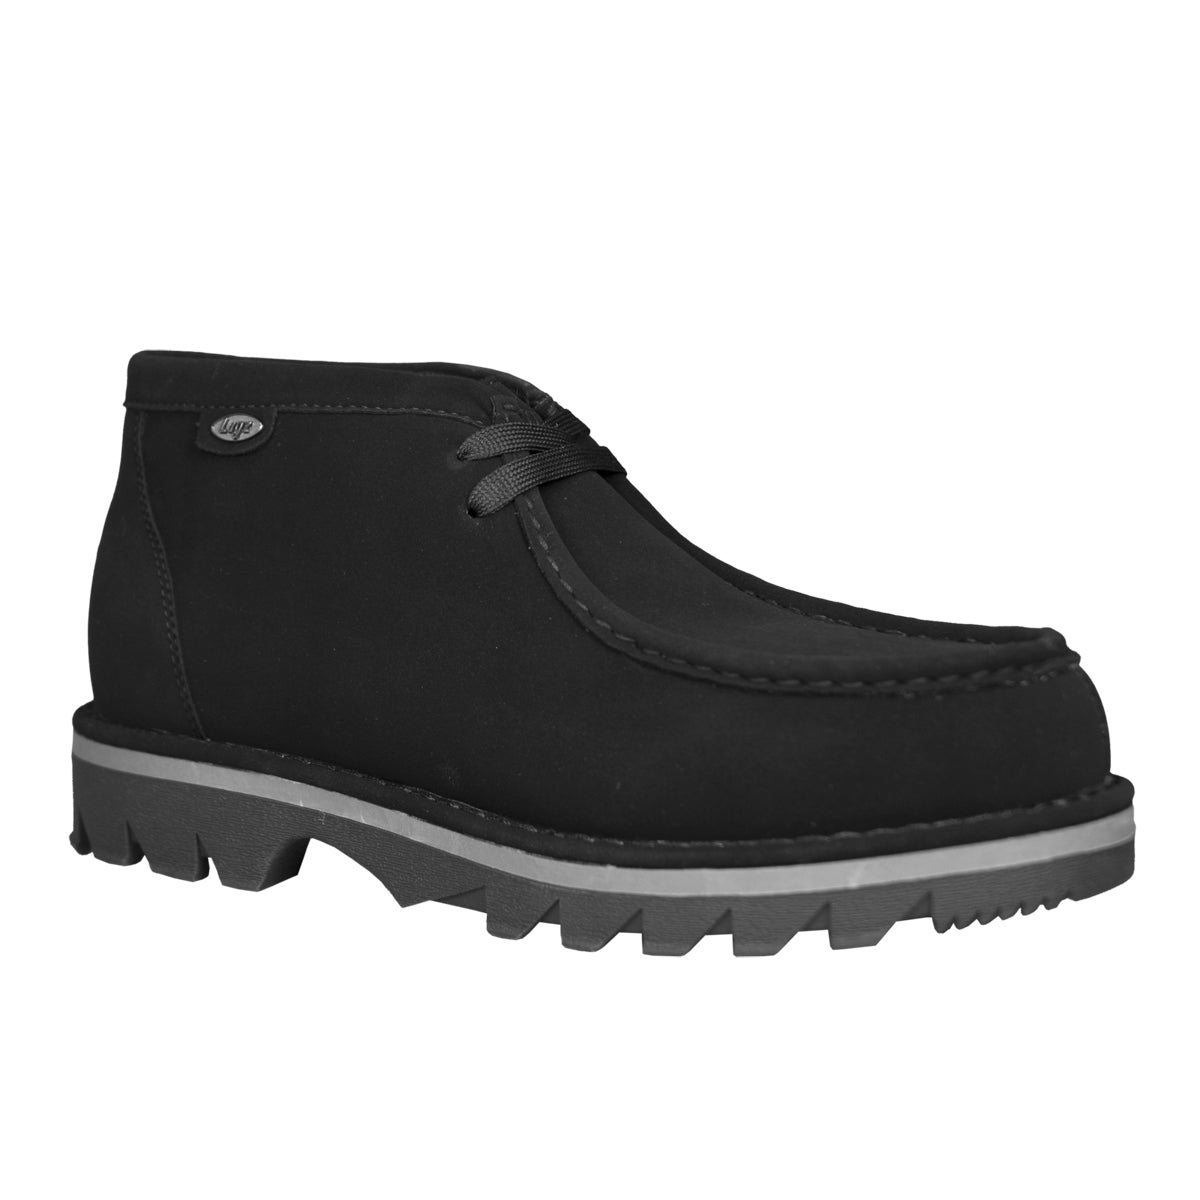 Lugz Men's Wally Mid - Thumbnail 0